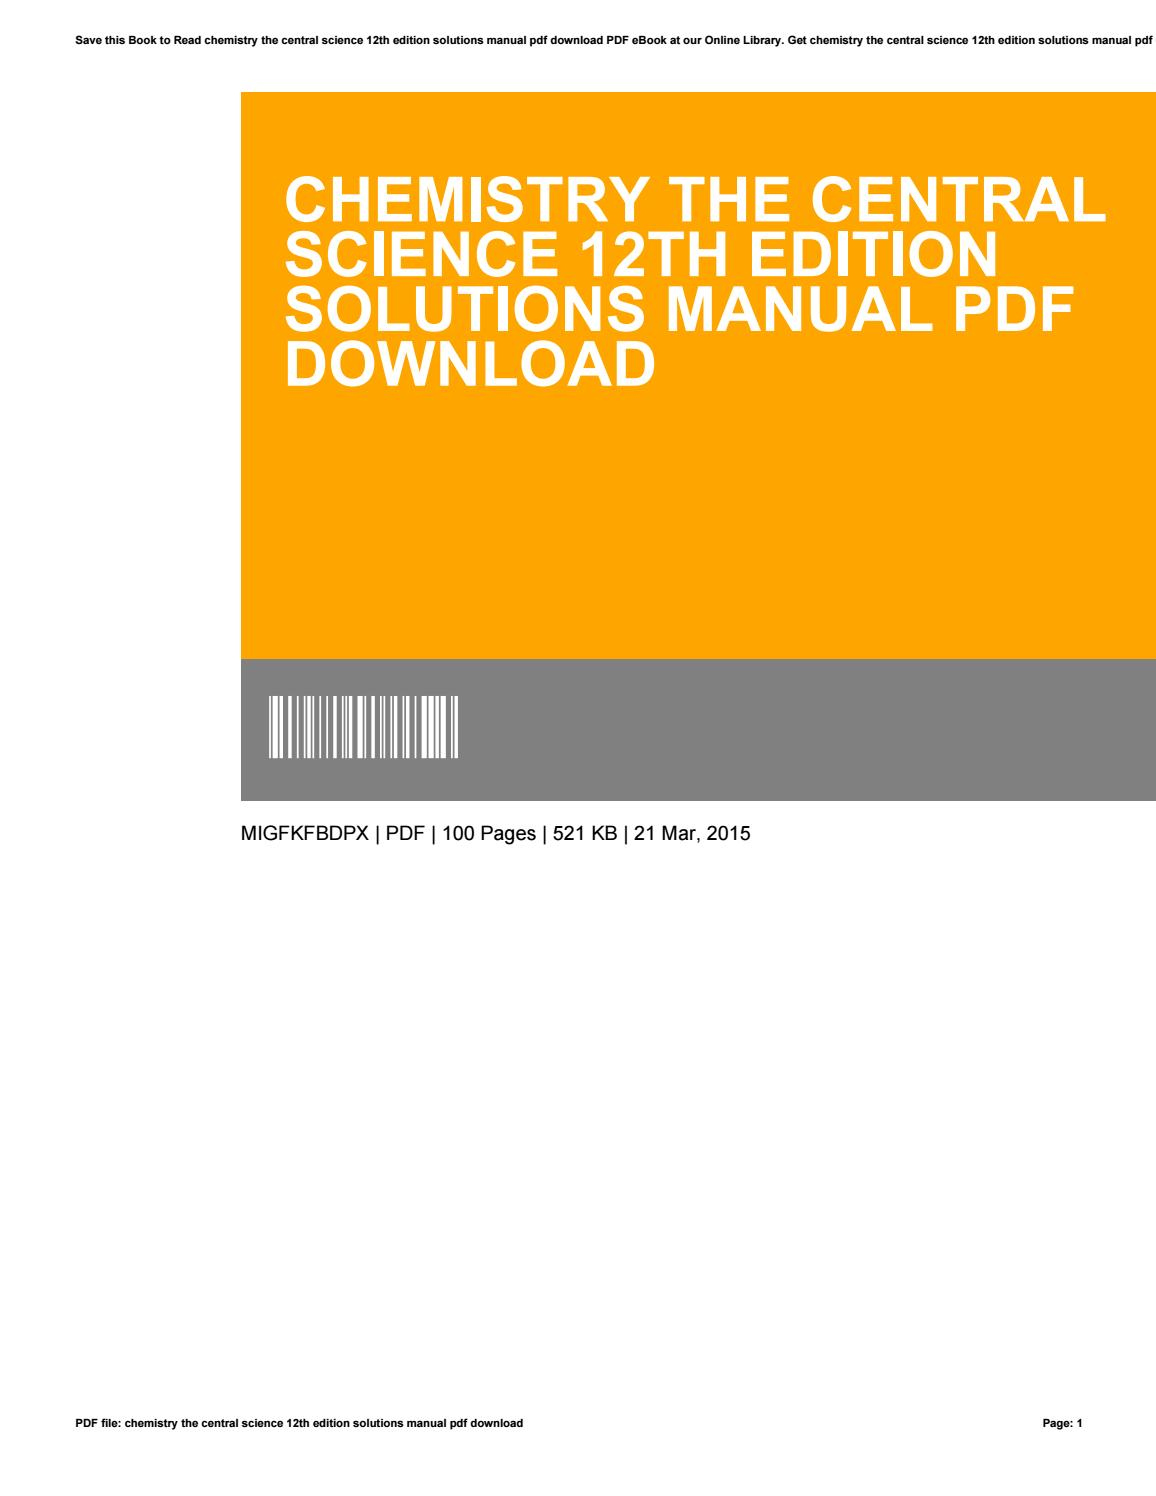 Chemistry The Central Science 12th Edition Pdf